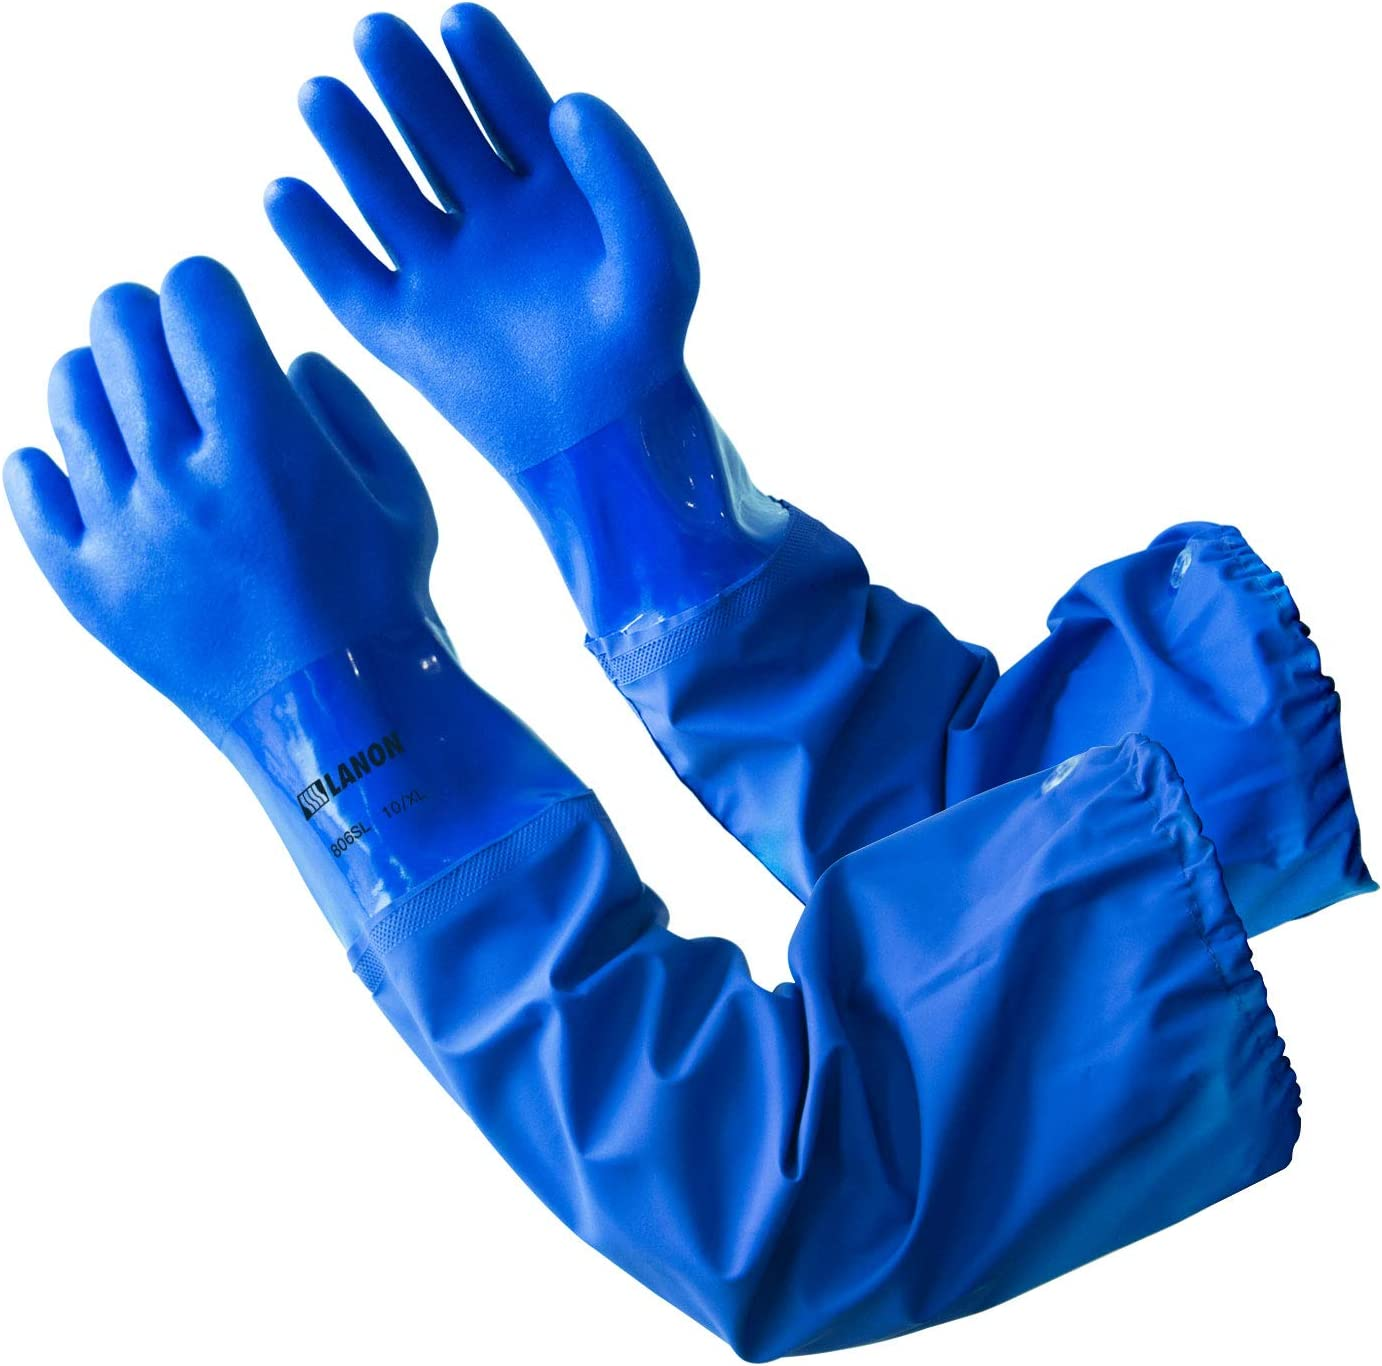 LANON 26 Inch Reusable Oil Resistant Work Gloves for Fishing, Elbow Length Chemical Resistant Glove, Non-slip, Latex Free, Textured, CAT III, Extra Large